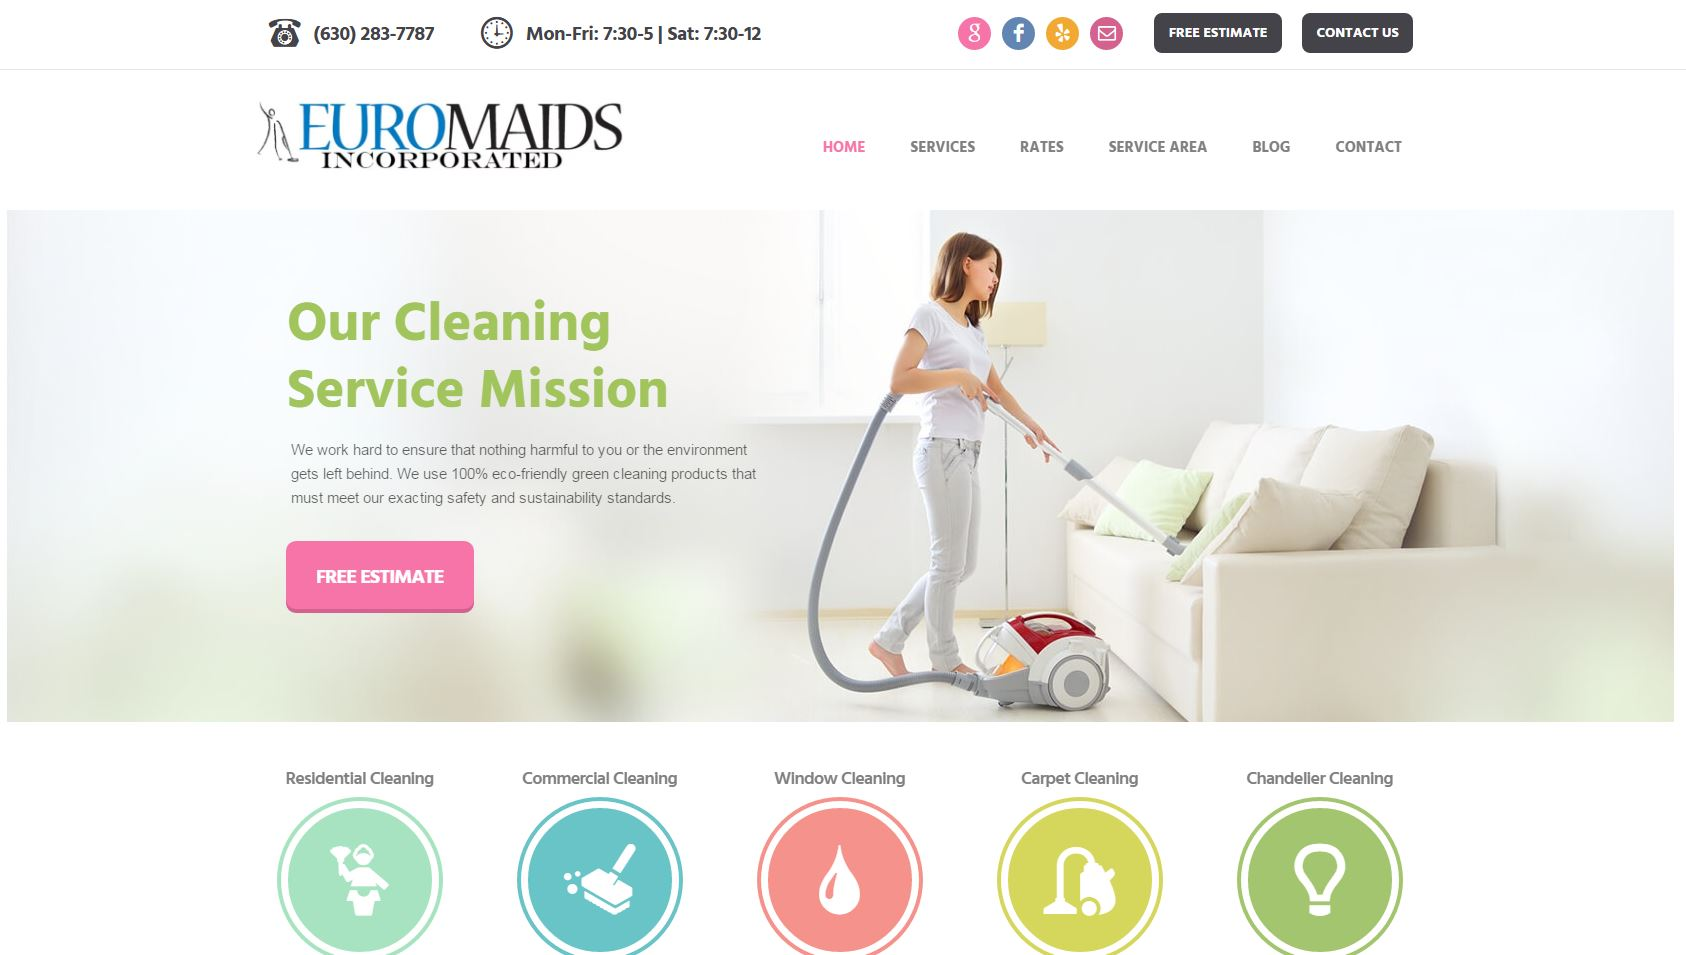 euromaids frontpage img